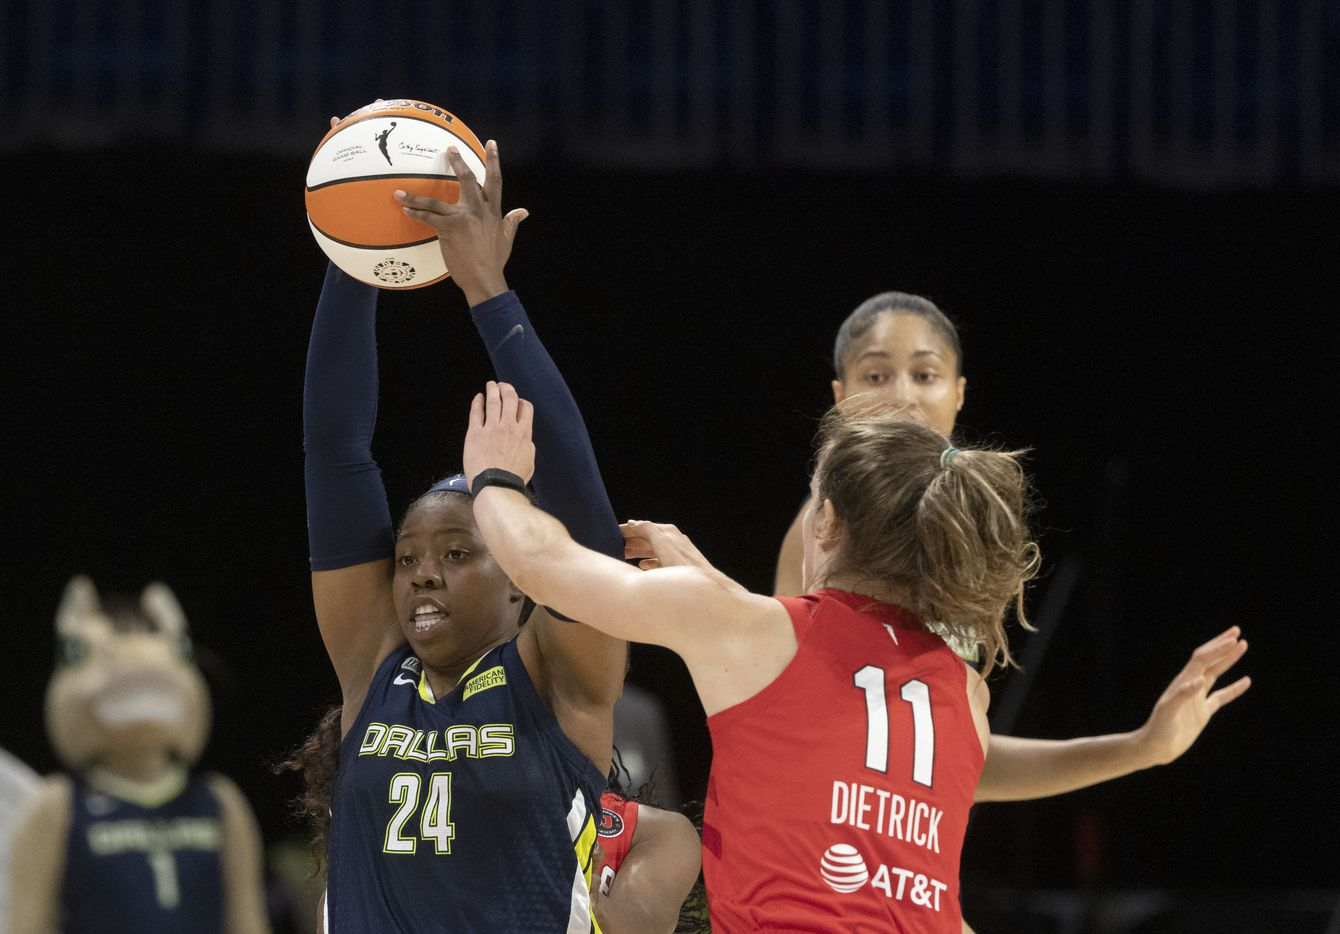 Dallas Wings guard Arike Ogunbowale (24) keeps the ball away from Atlanta Dream guard Blake Dietrick (11) during the second half of their WNBA basketball game in Arlington, Texas on Sept. 2, 2021. Dallas won 72-68. (Michael Ainsworth/Special Contributor)